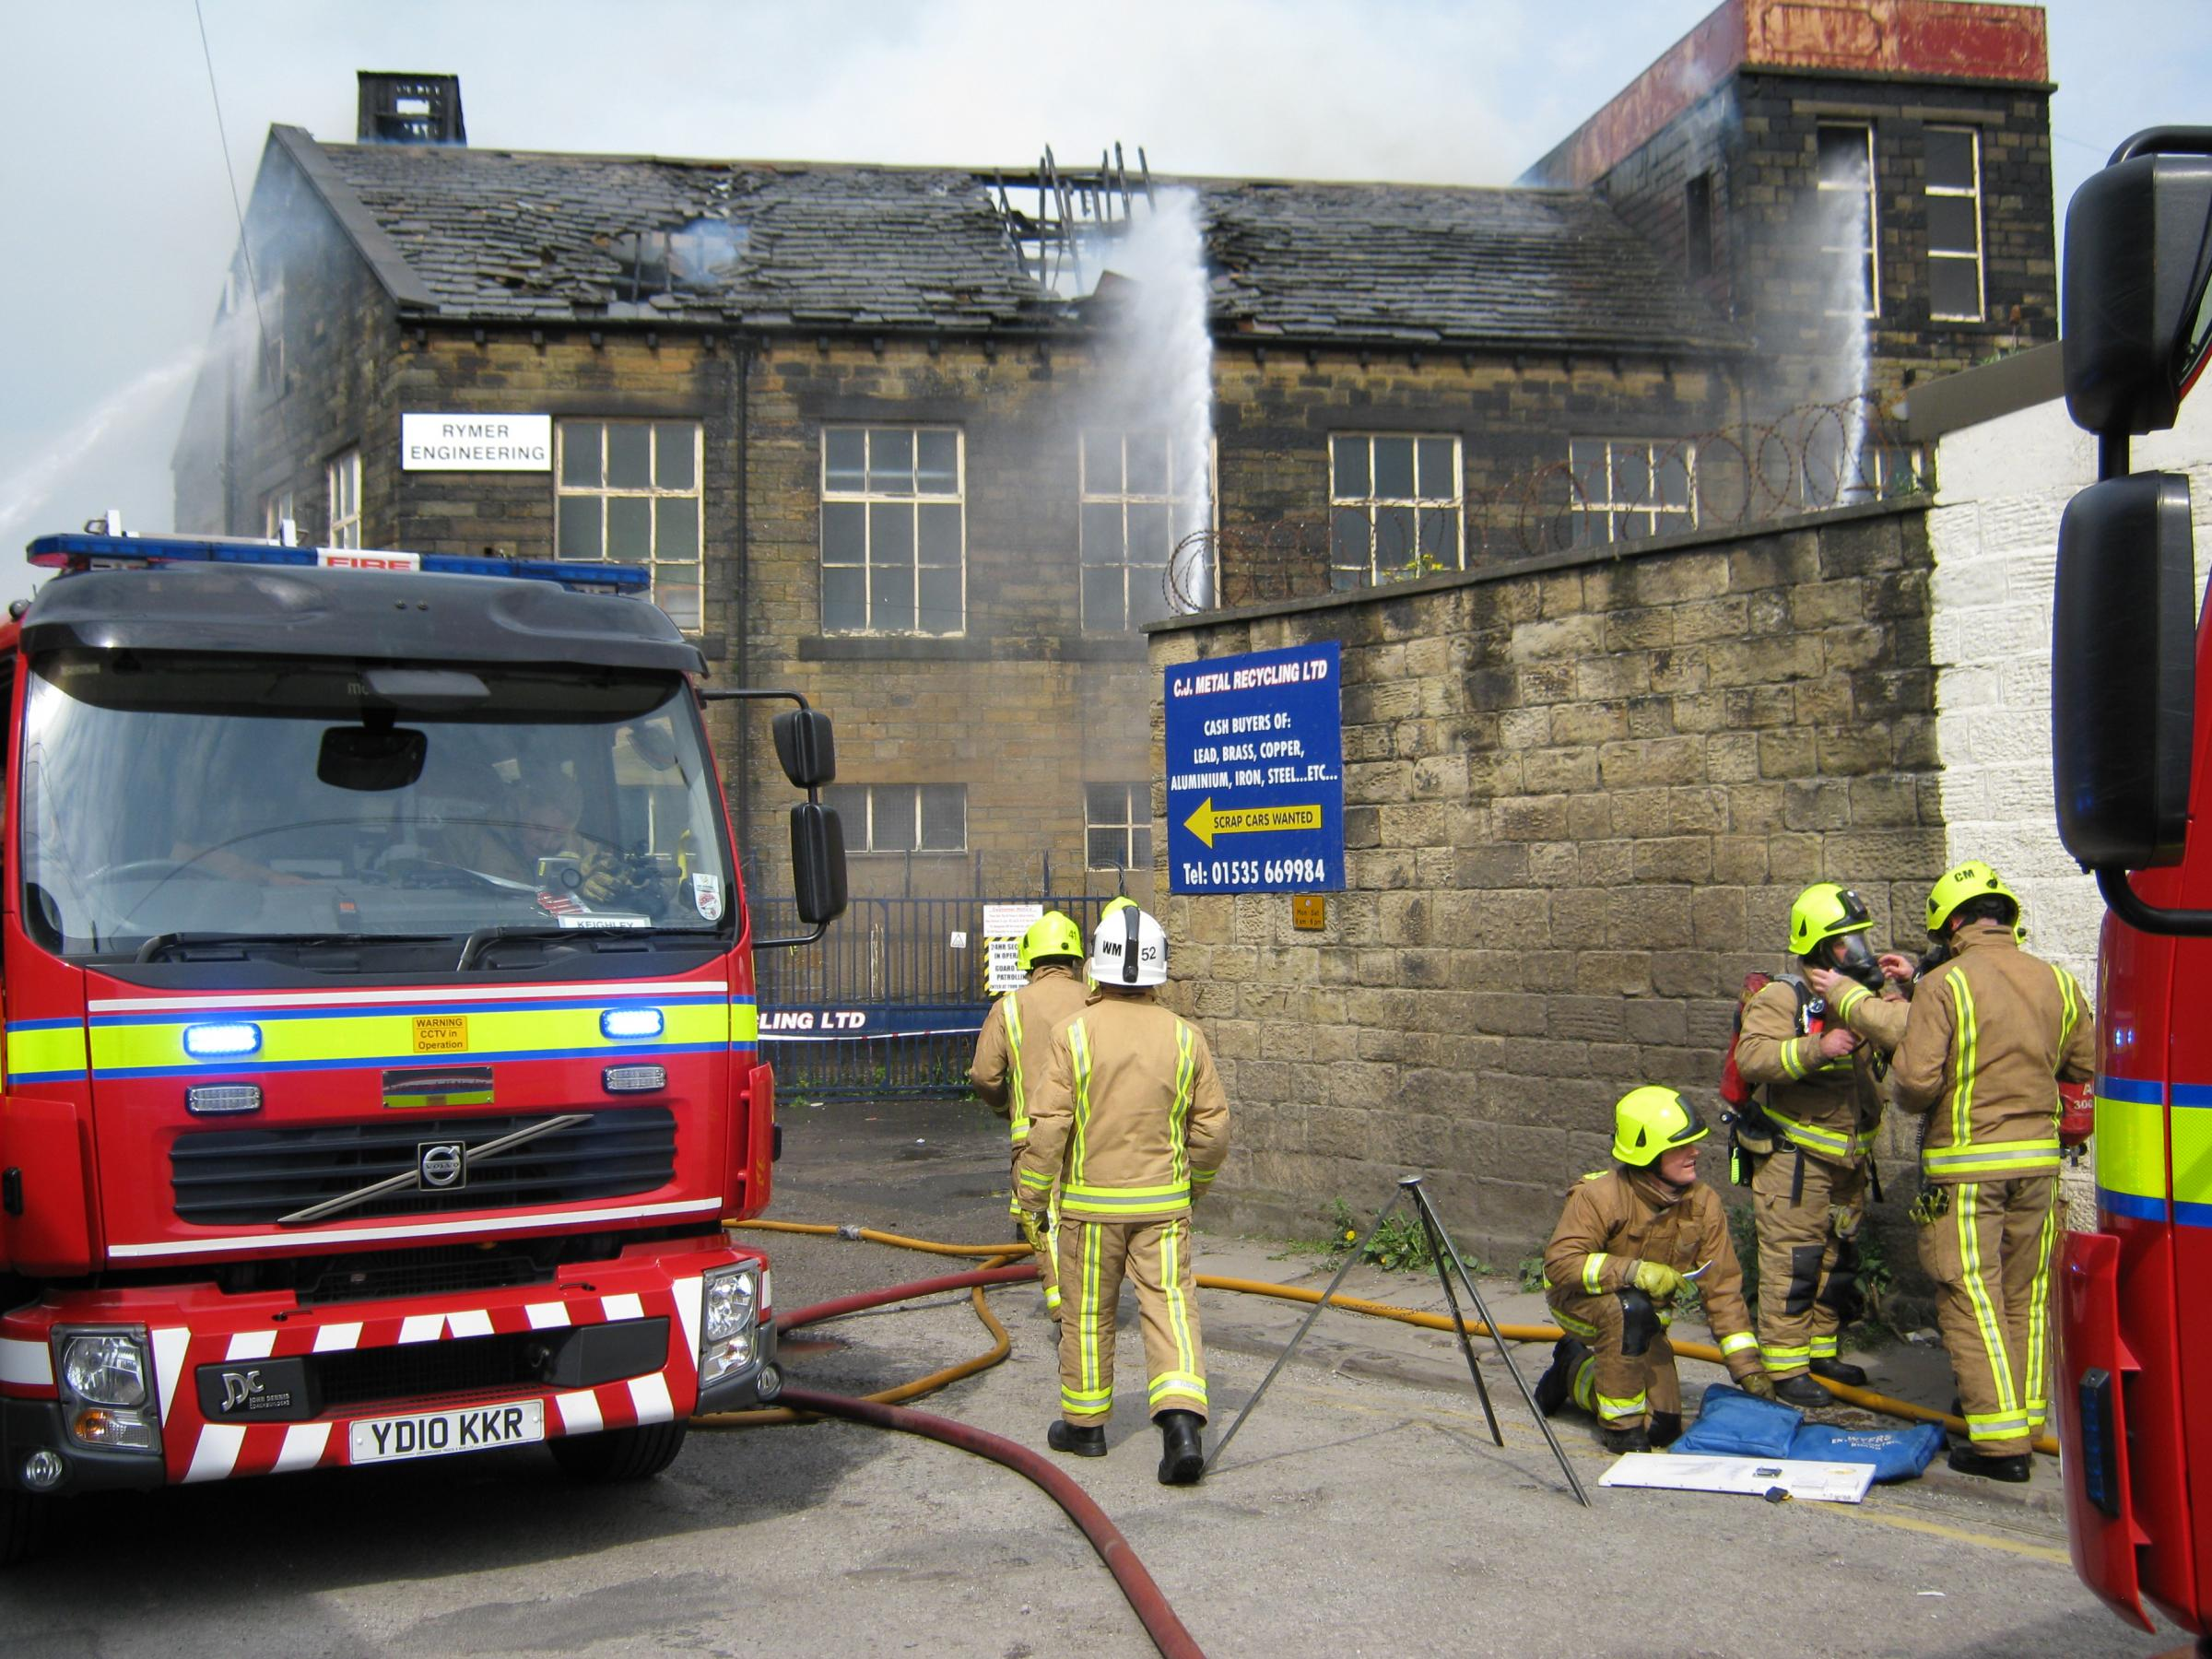 Fire rages through former engineering works in Keighley